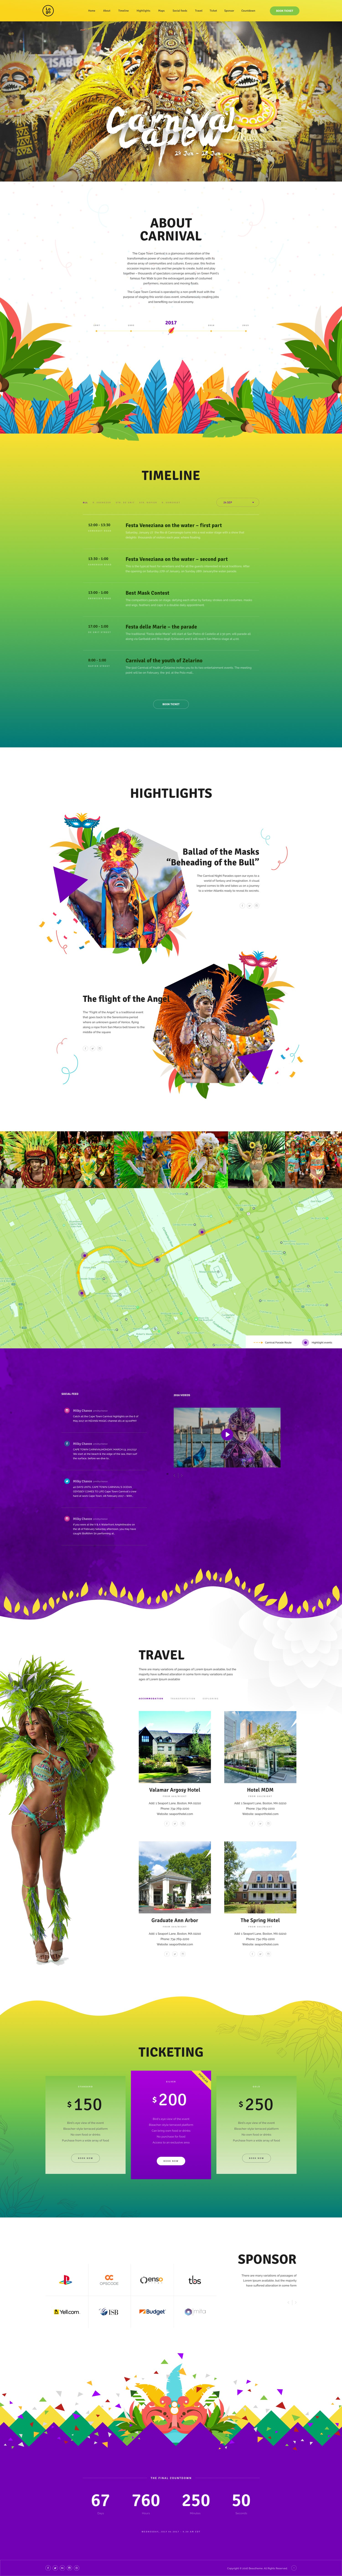 Carnival – Landing Page For Festival Event